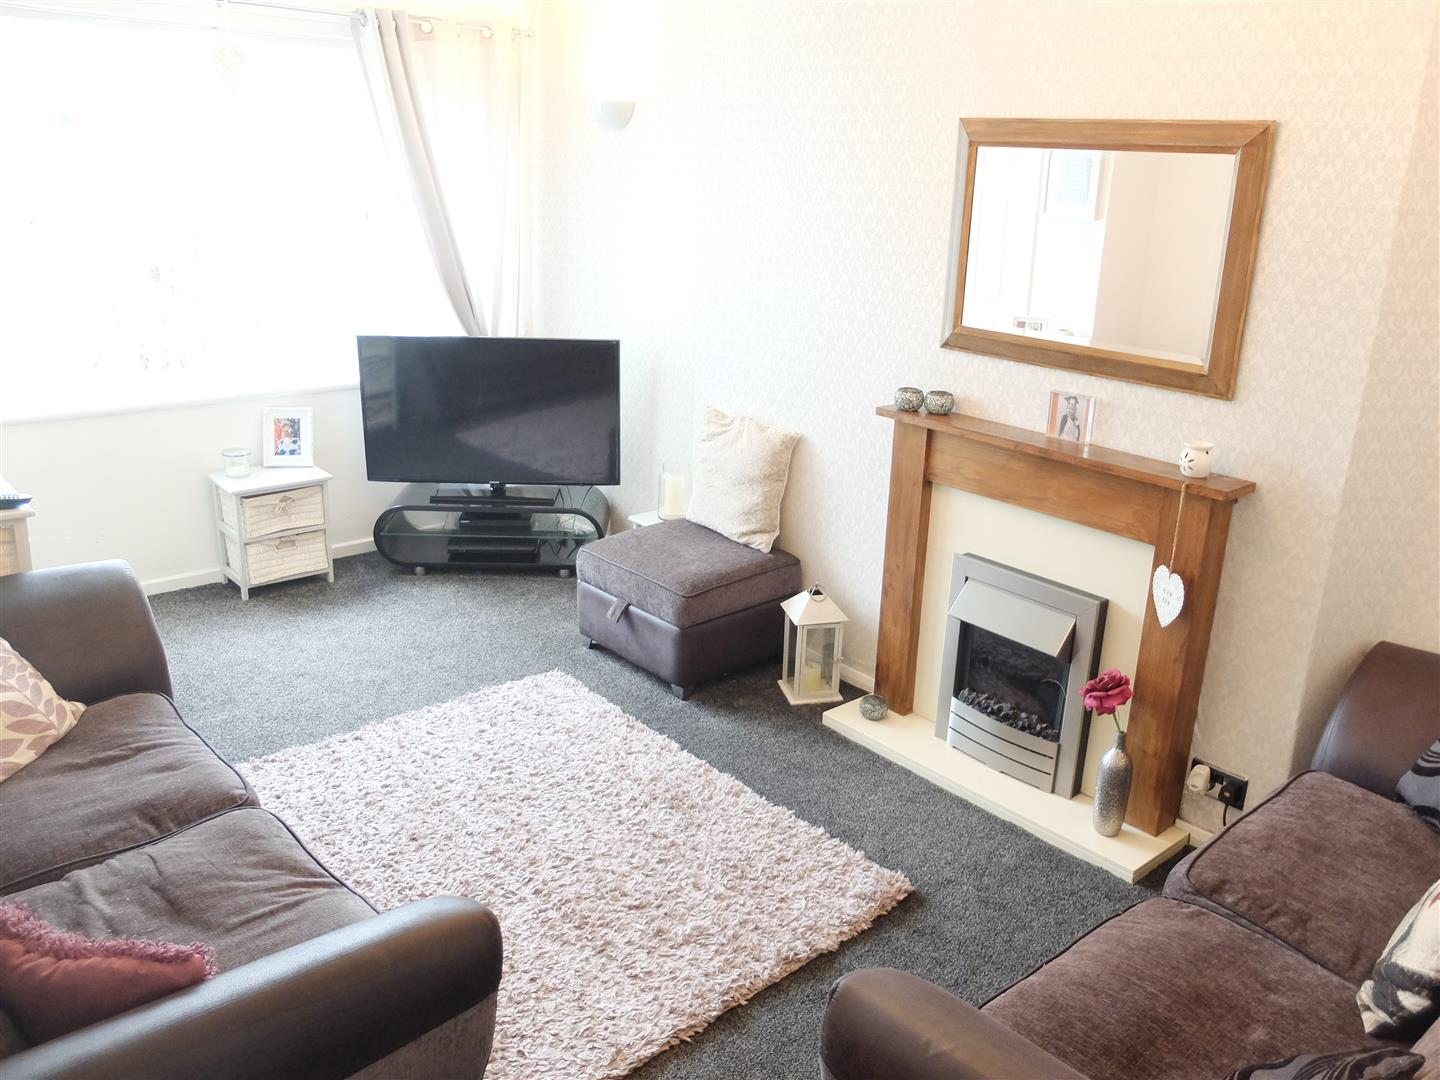 2 Bedrooms House - Semi-Detached For Sale 194 Yewdale Road Carlisle